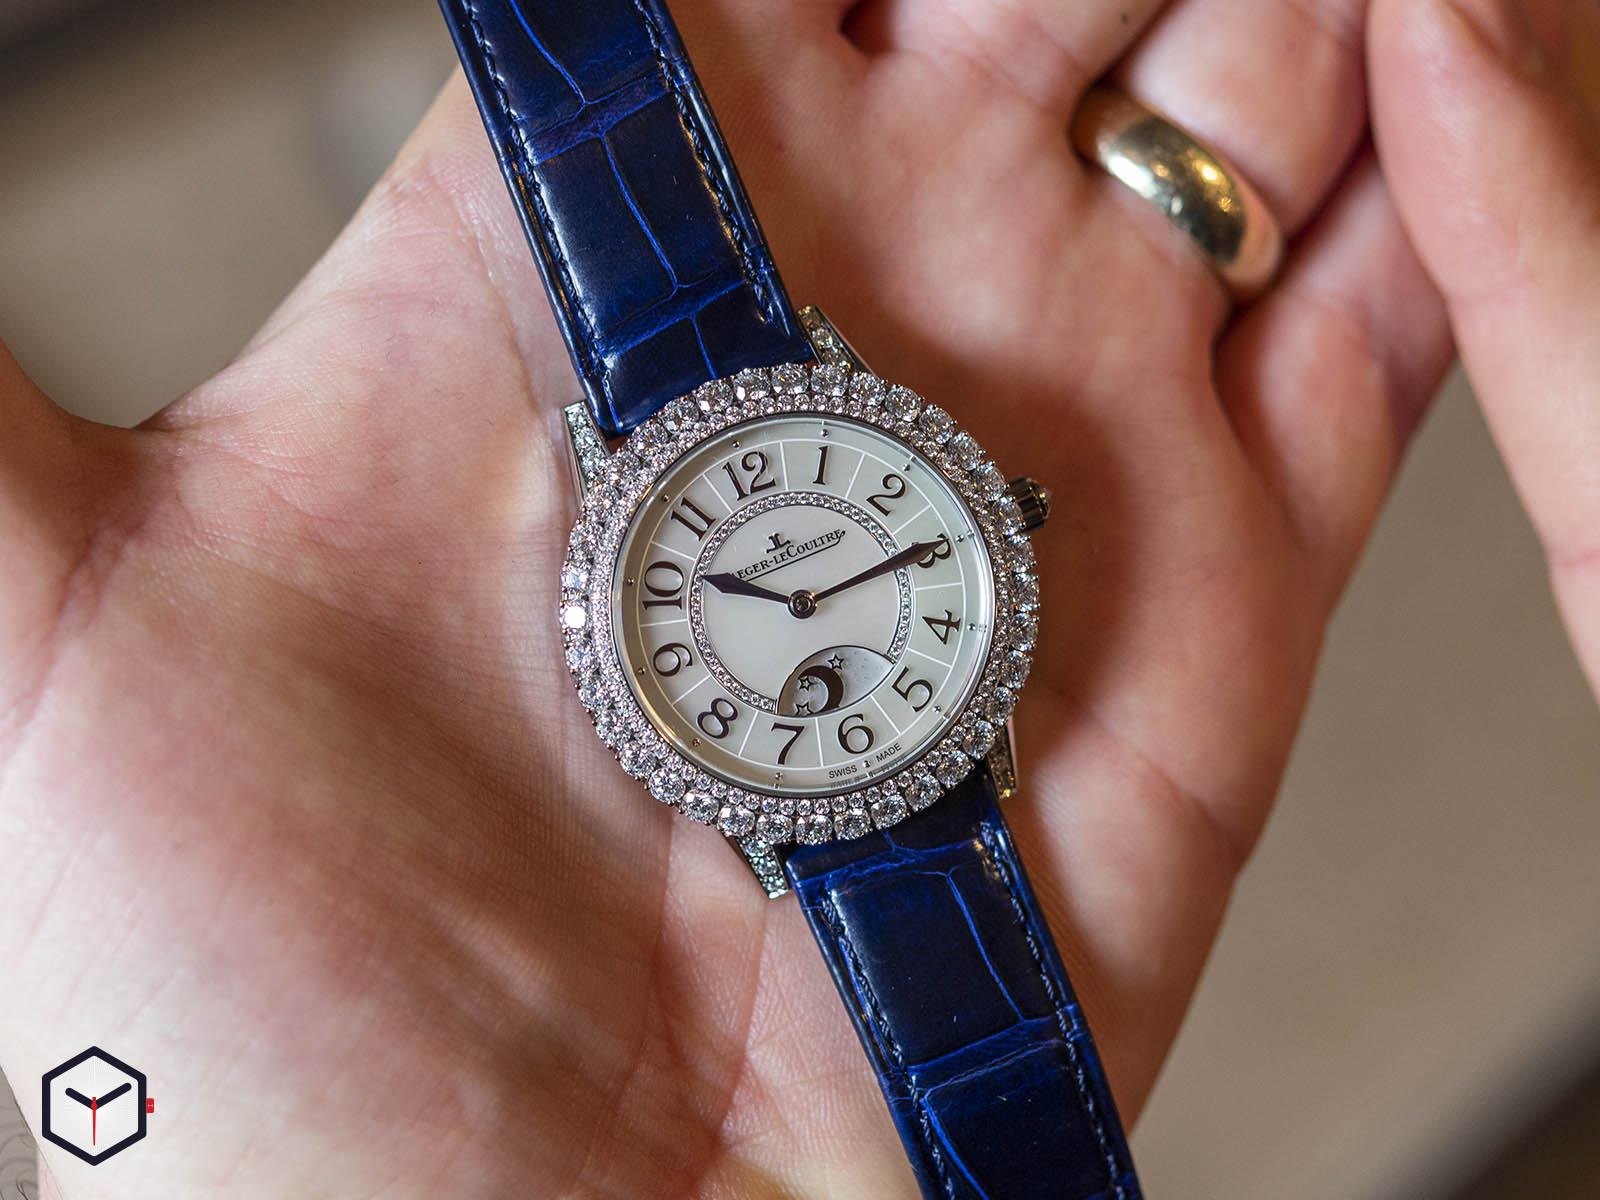 3433570-jaeger-lecoultre-rendez-vous-night-day-white-gold-sihh-2019-7.jpg